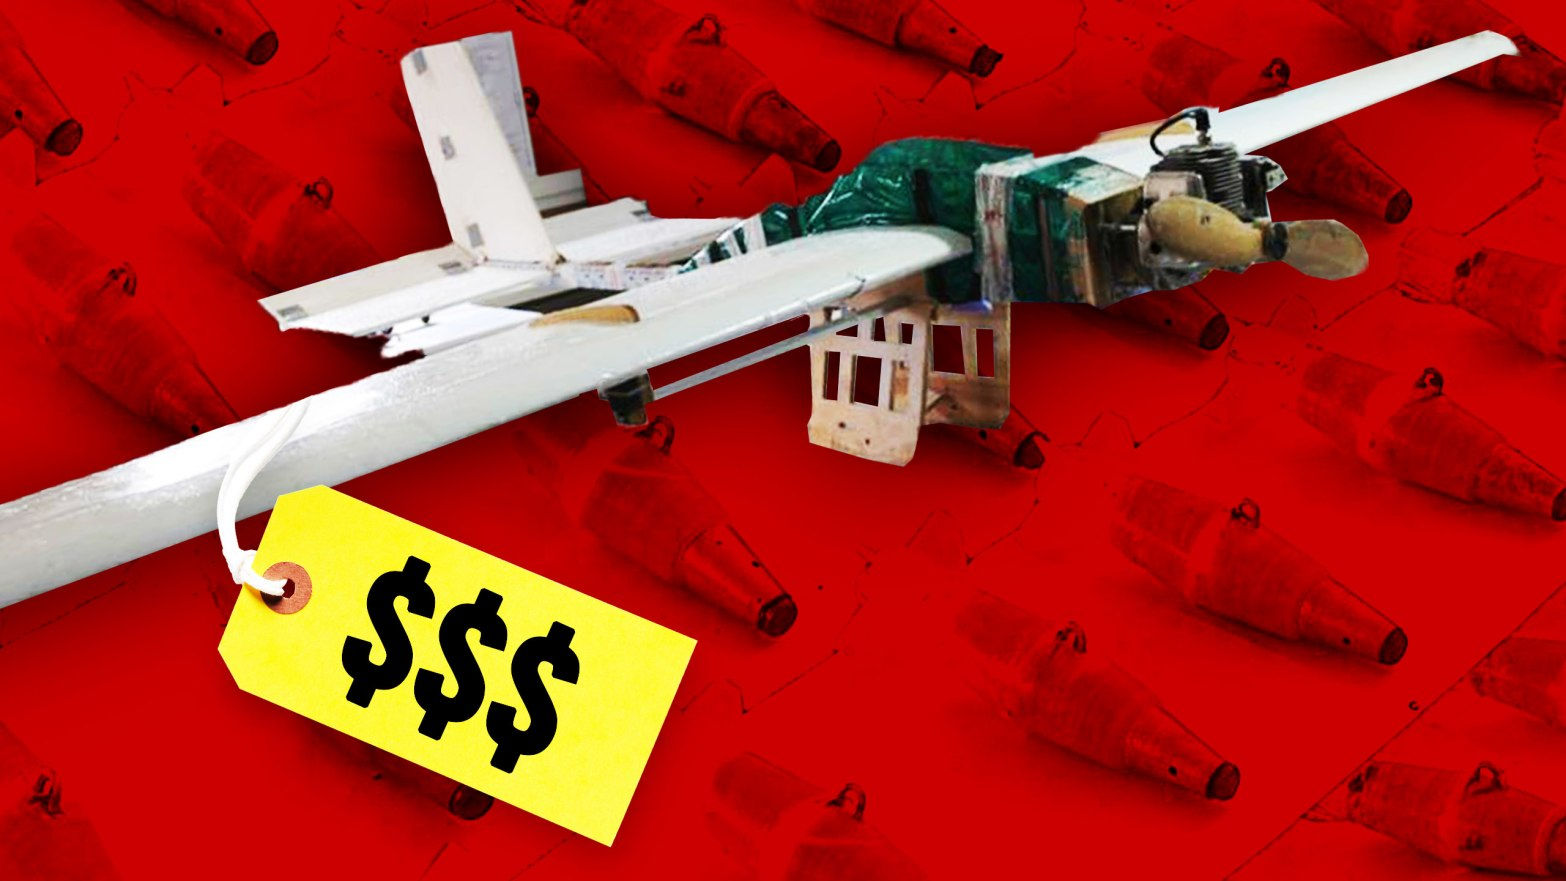 Black Market Sold Drones Used in Russian Base Attack